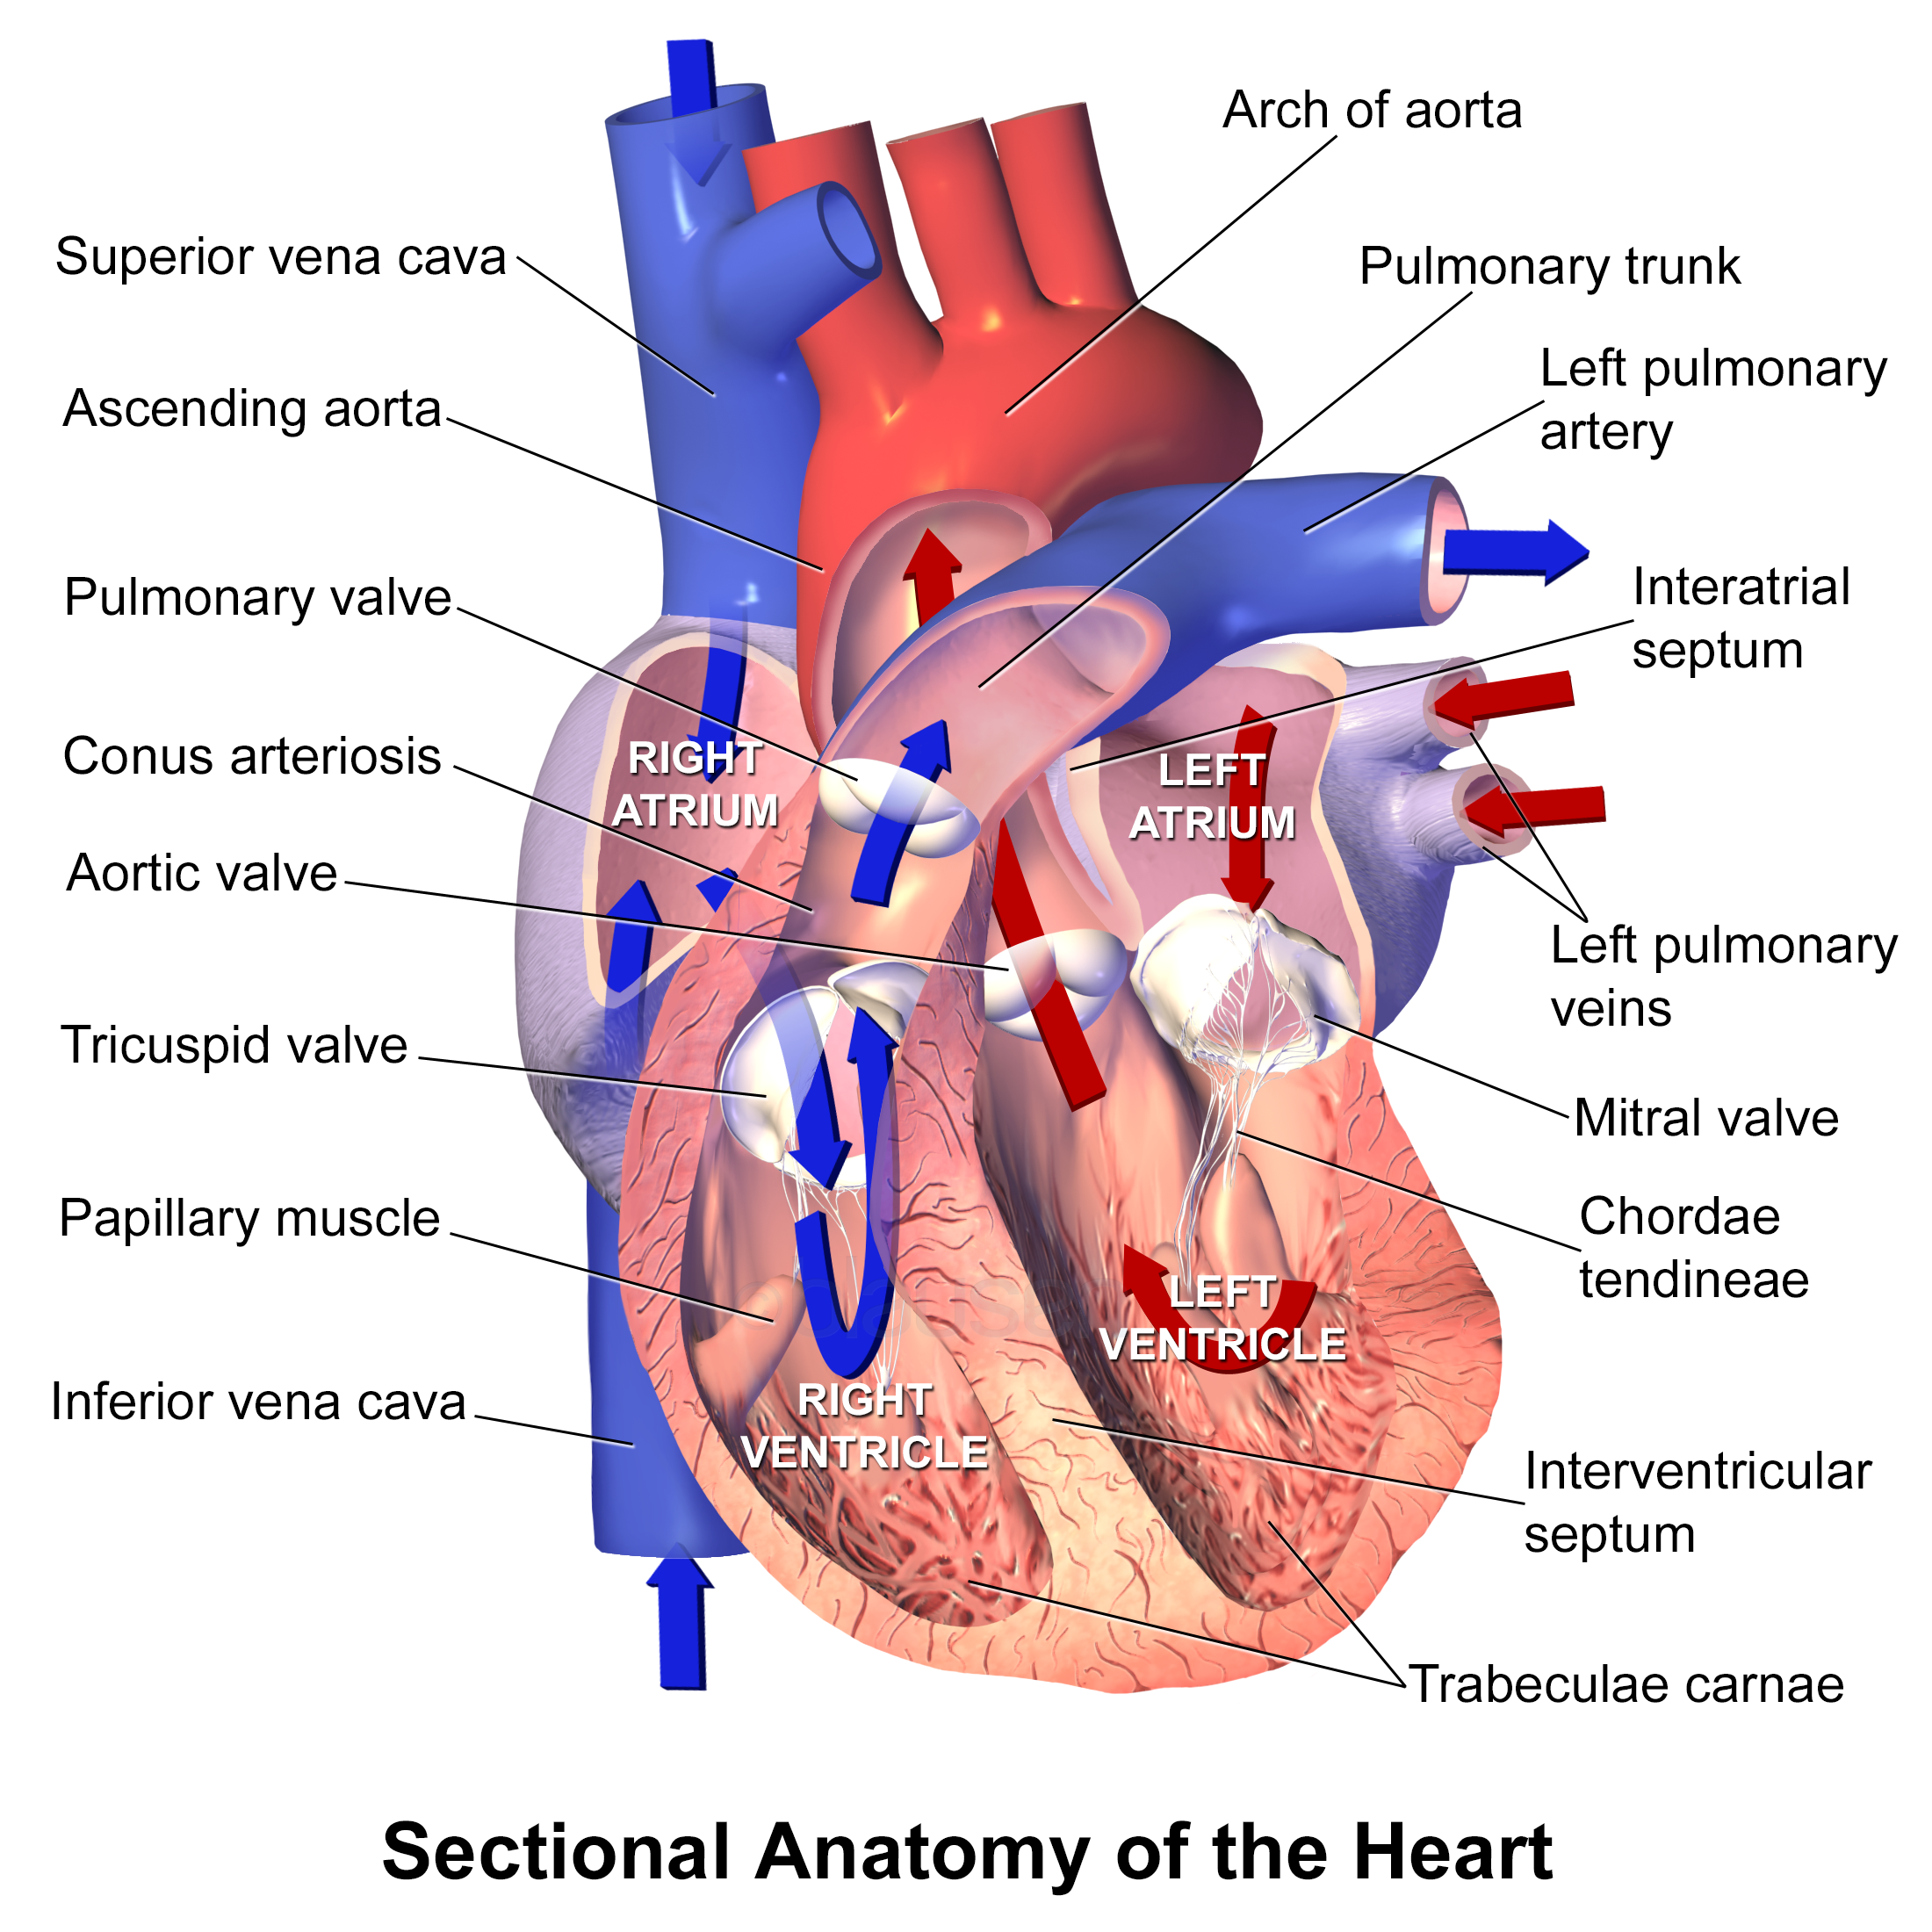 file blausen 0457 heart sectionalanatomy png